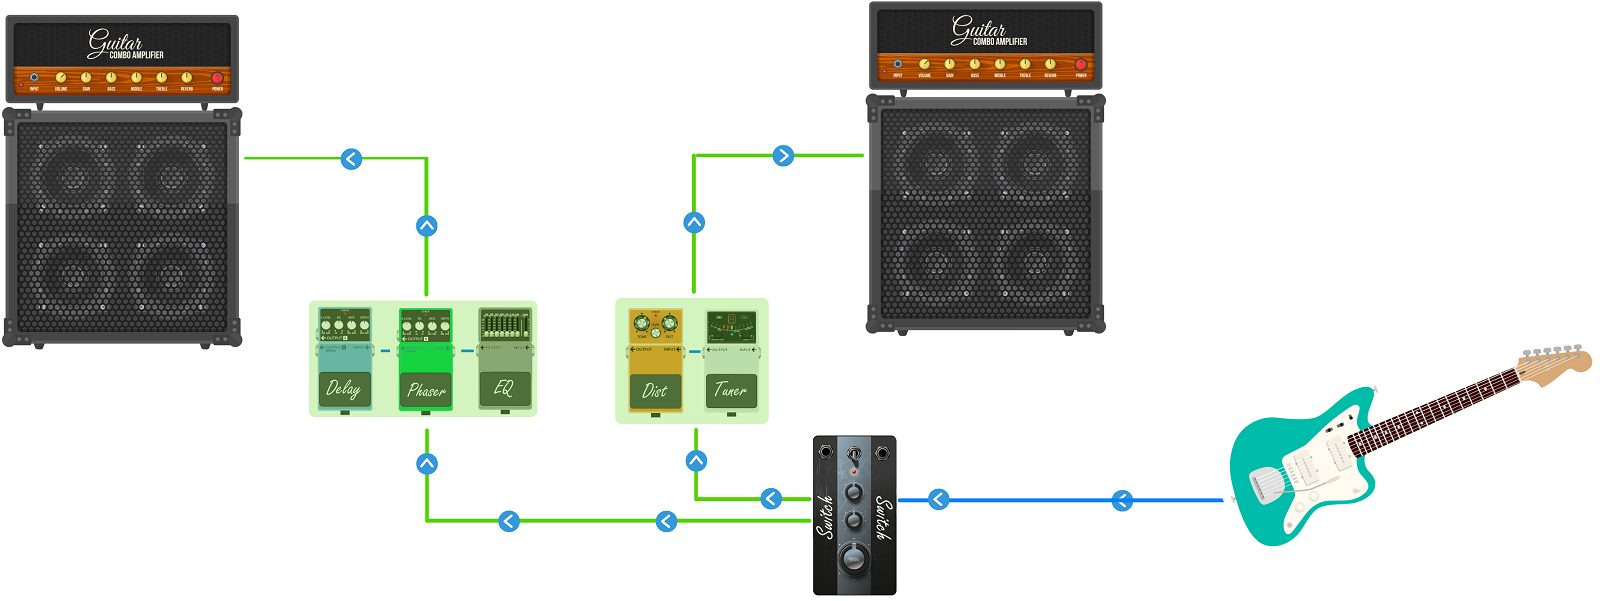 ABY Splitting Diagram with Two Amplifiers and Two Pedalboards